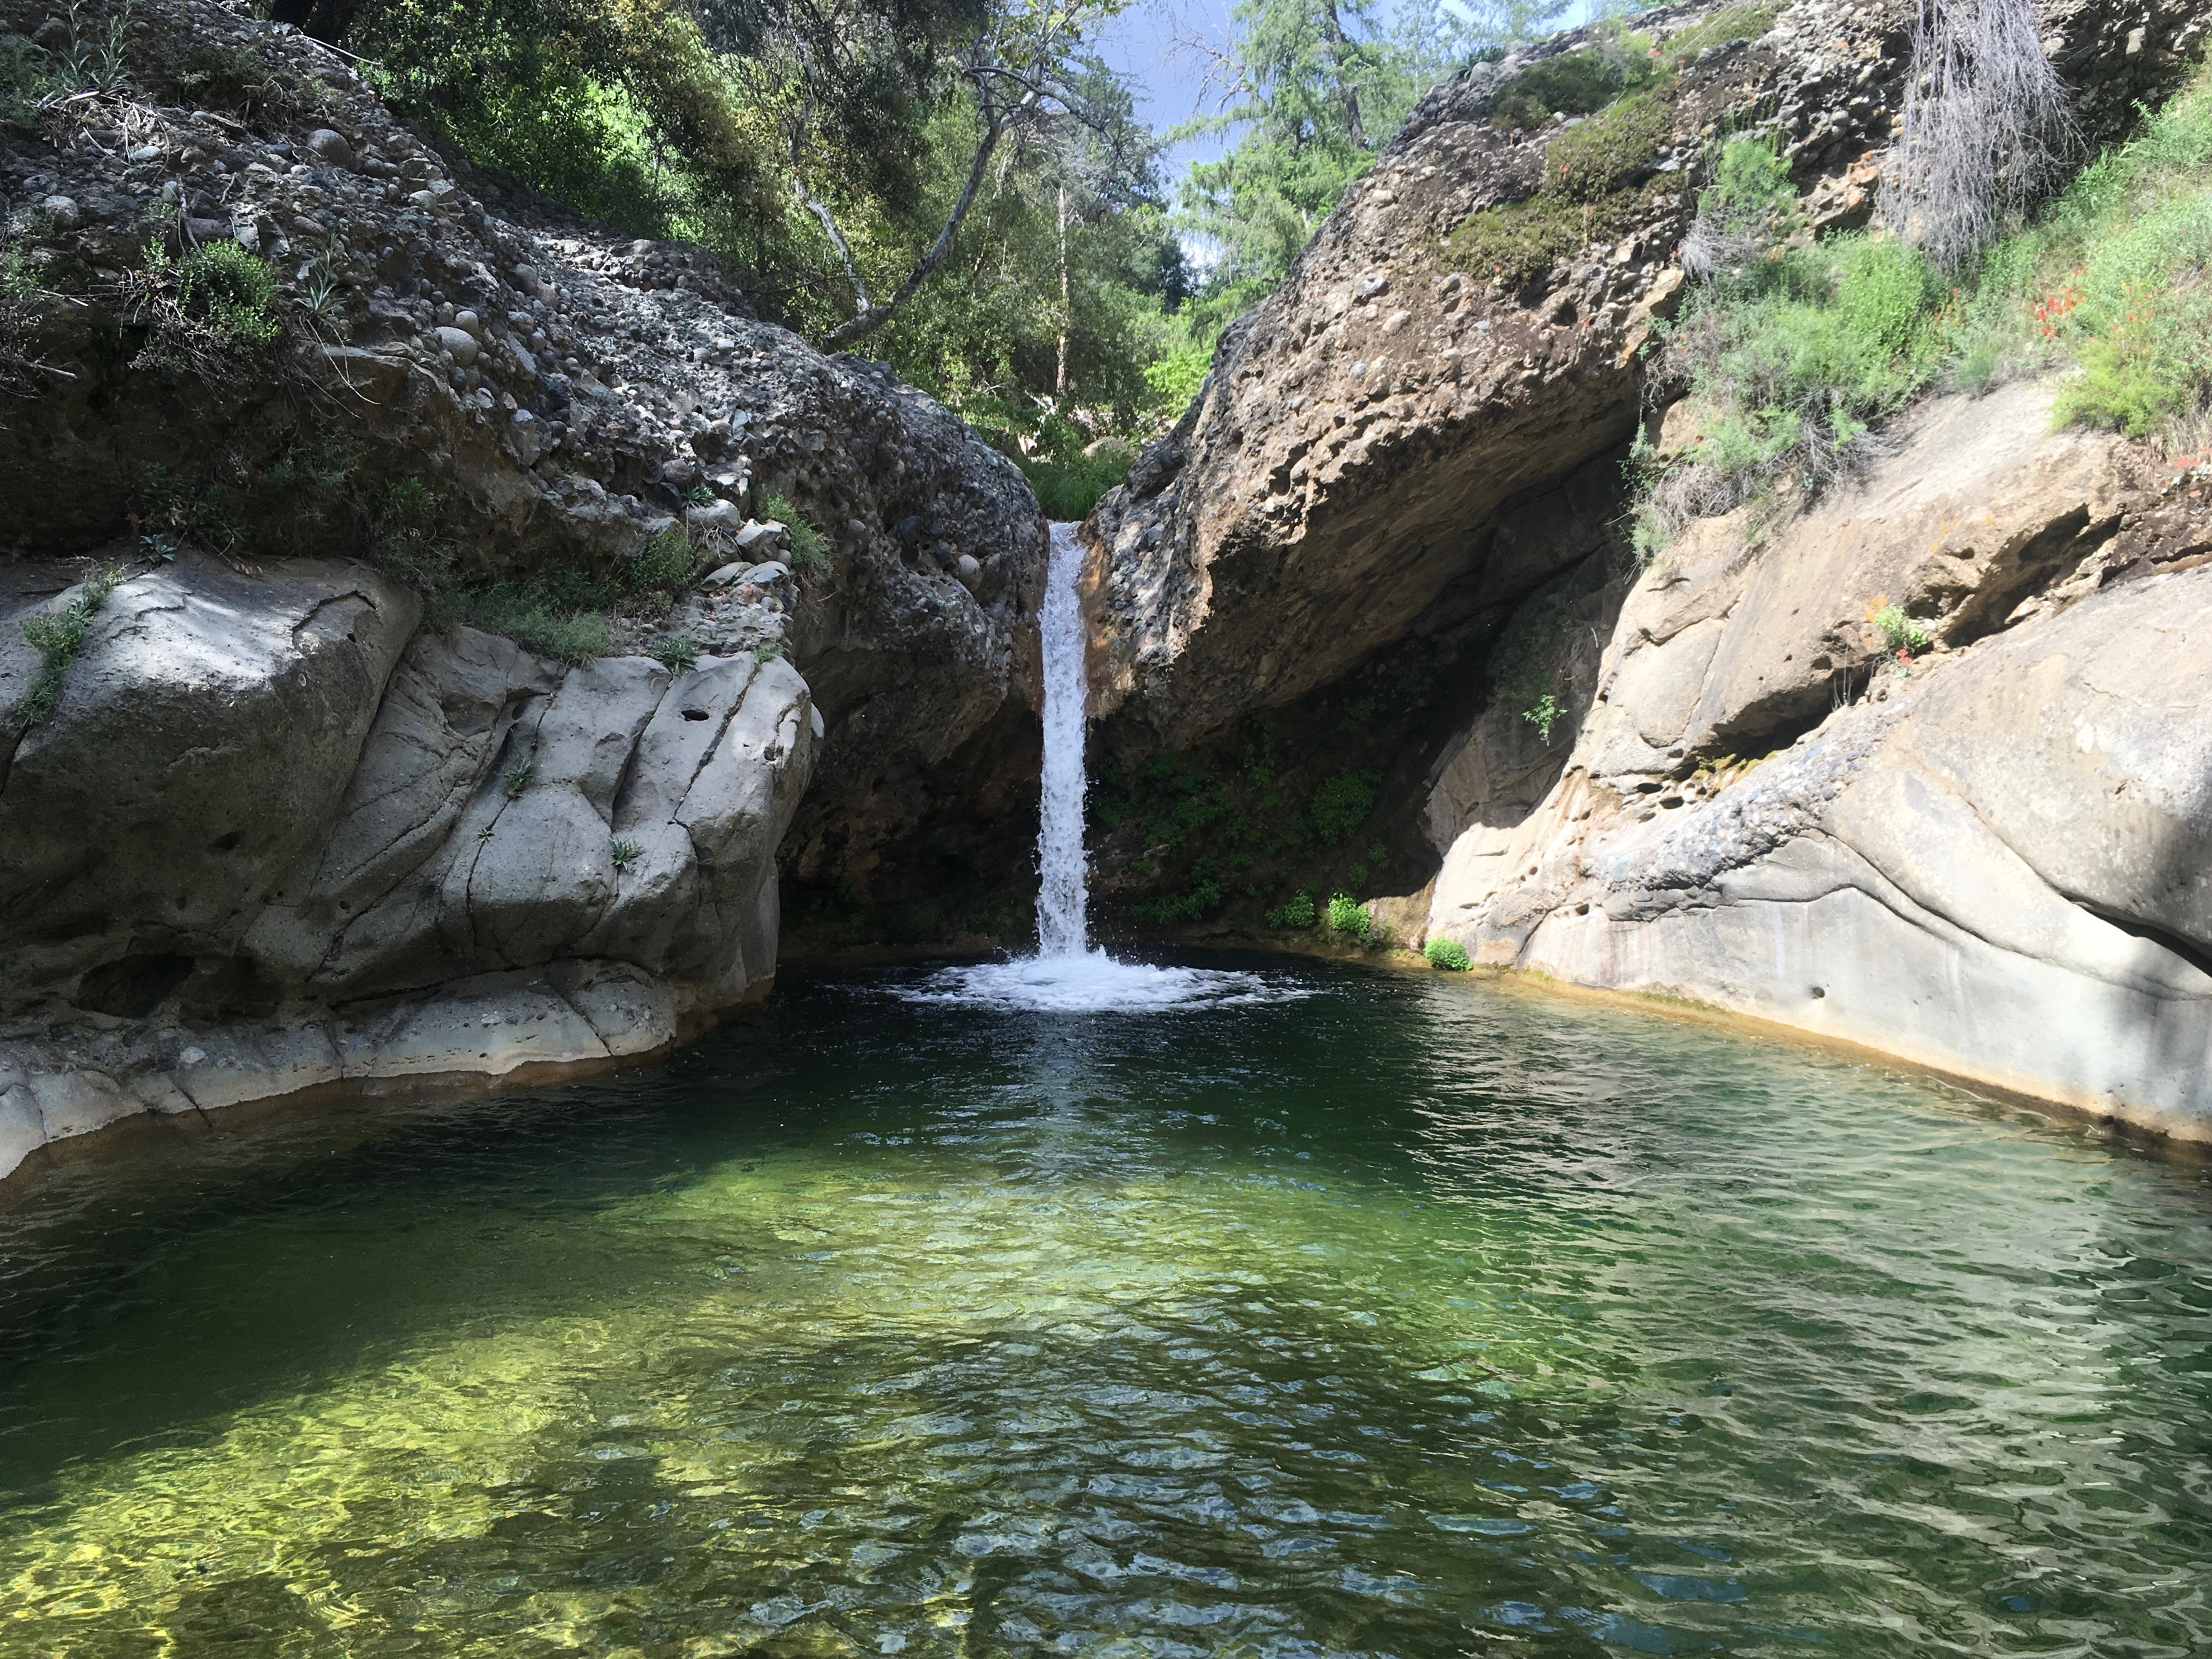 Perfect 10 Indian Creek Canyon waterfall hiking backpacking Dick Smith Wilderness Los Padres National Forest